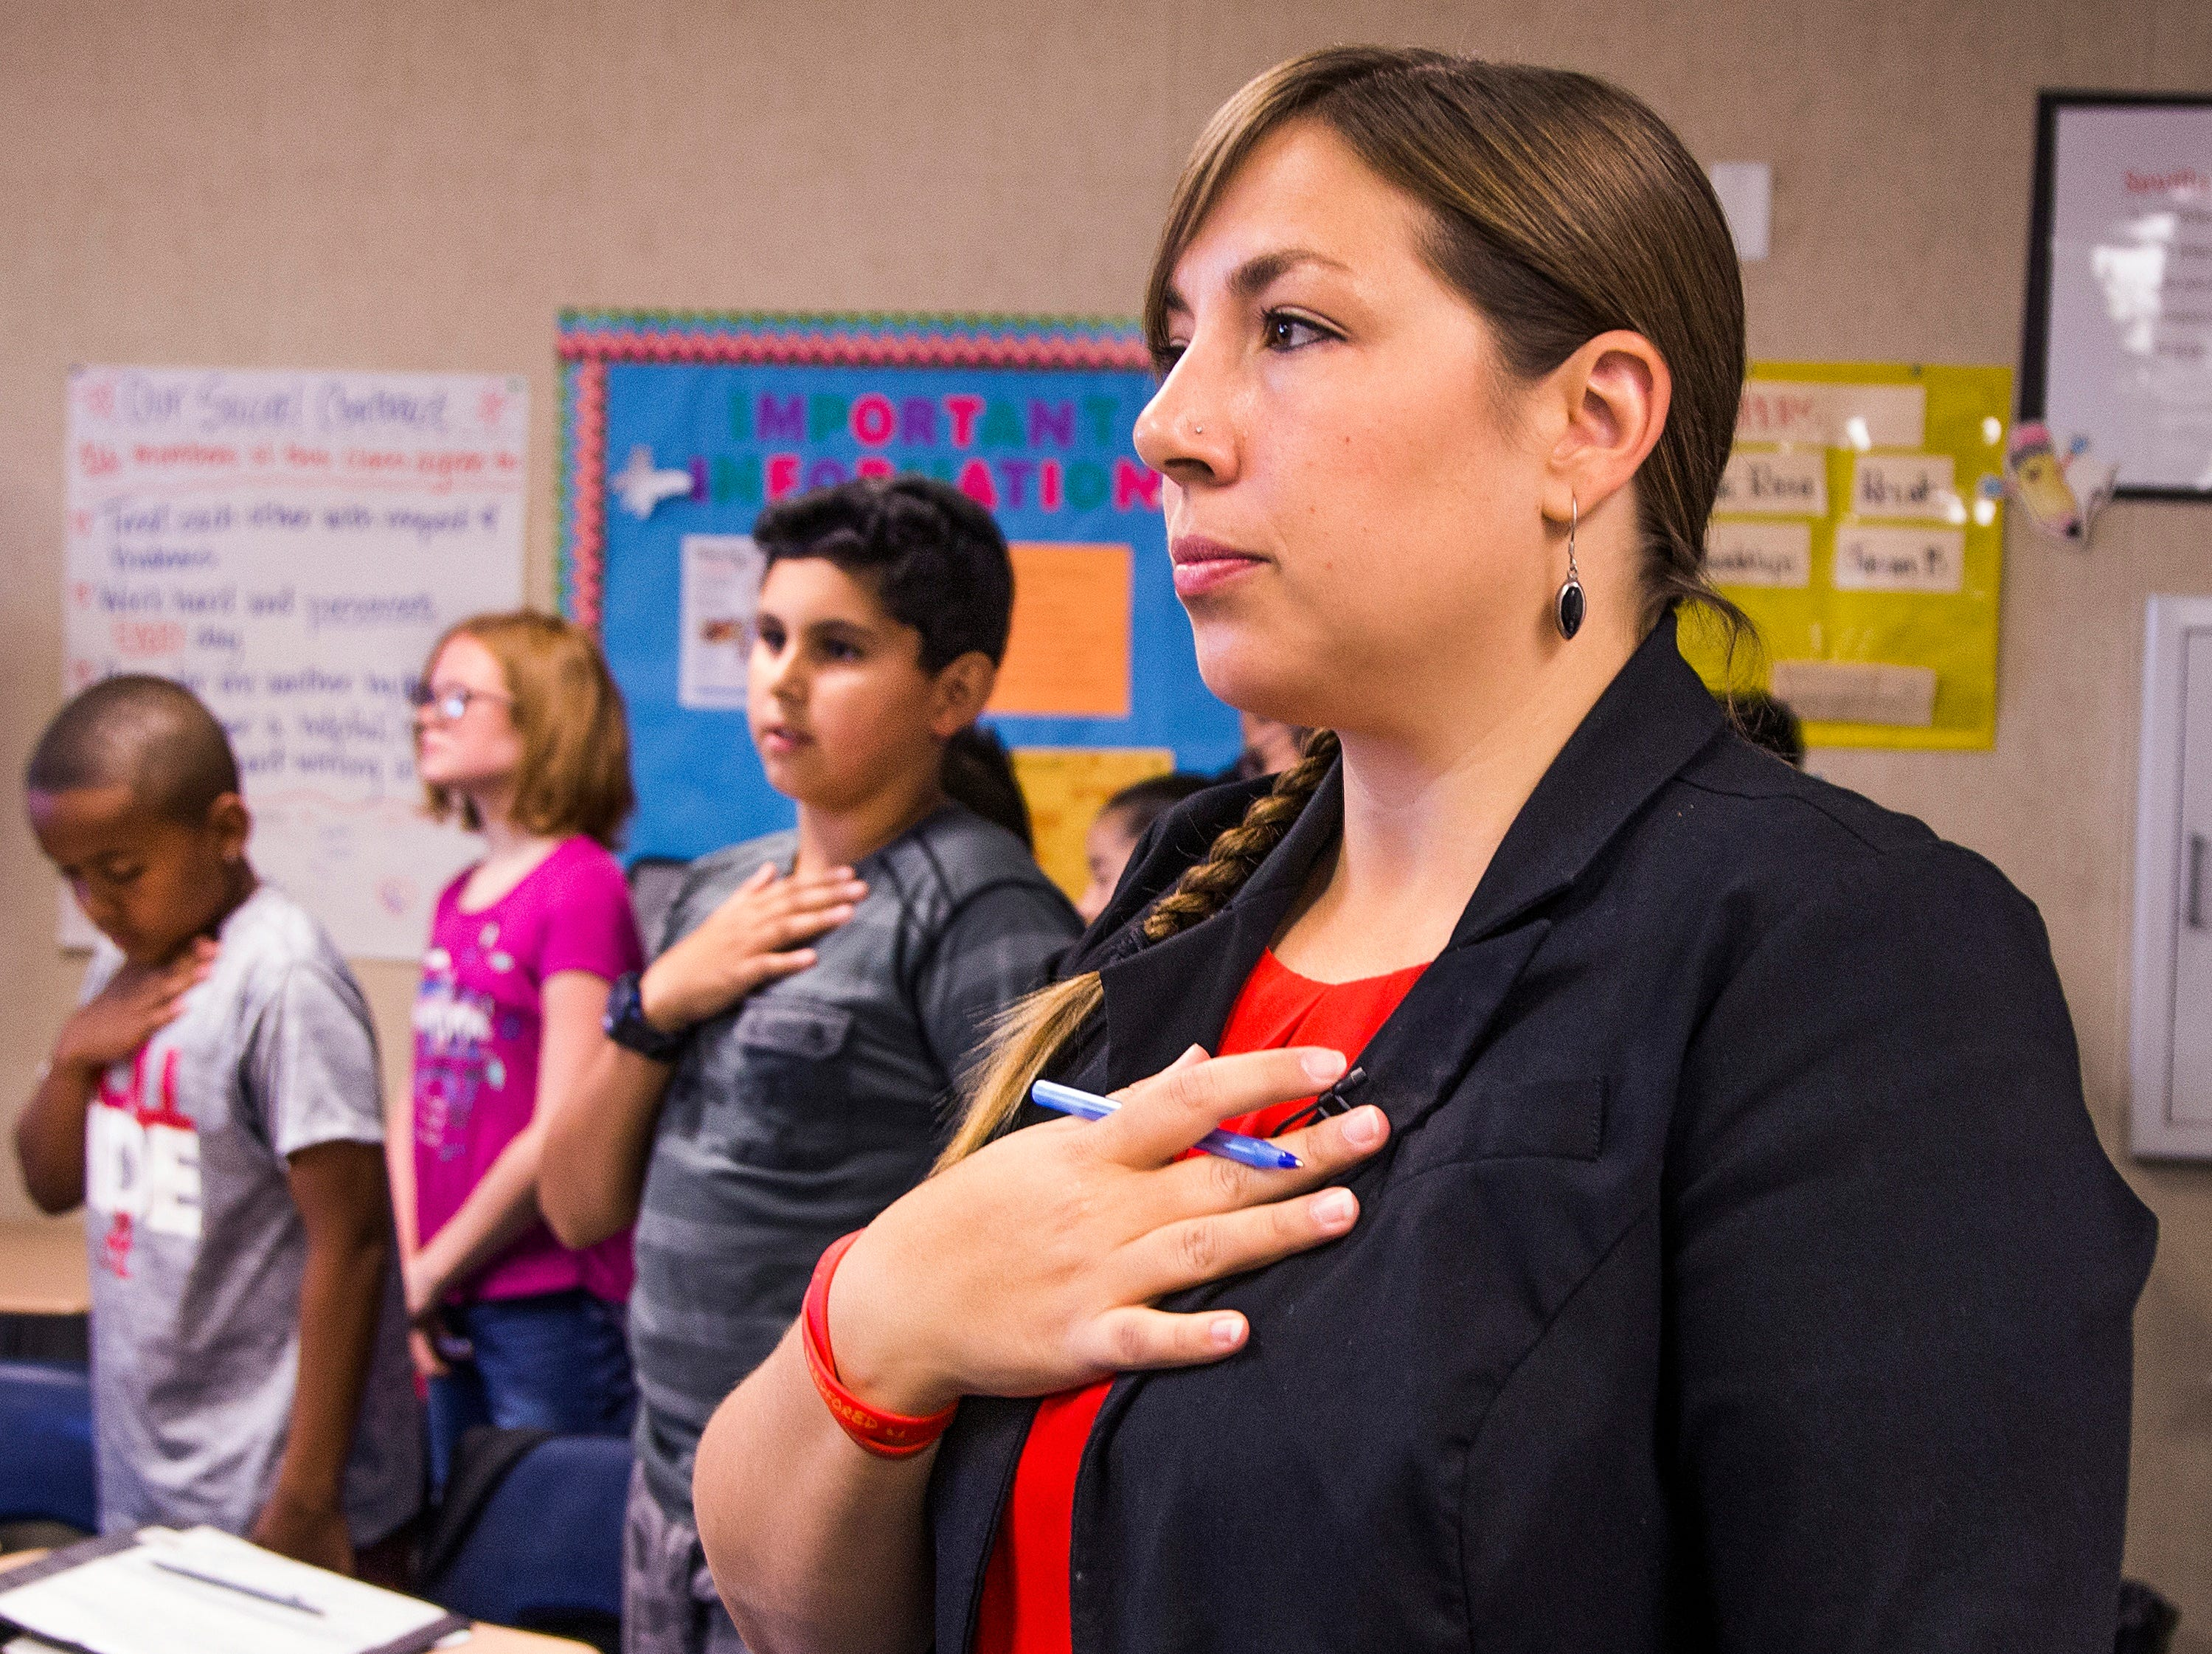 Phoenix, AZ – Rebecca Garelli holds her hand over her heart during the Pledge of Allegiance at Sevilla West Elementary School.